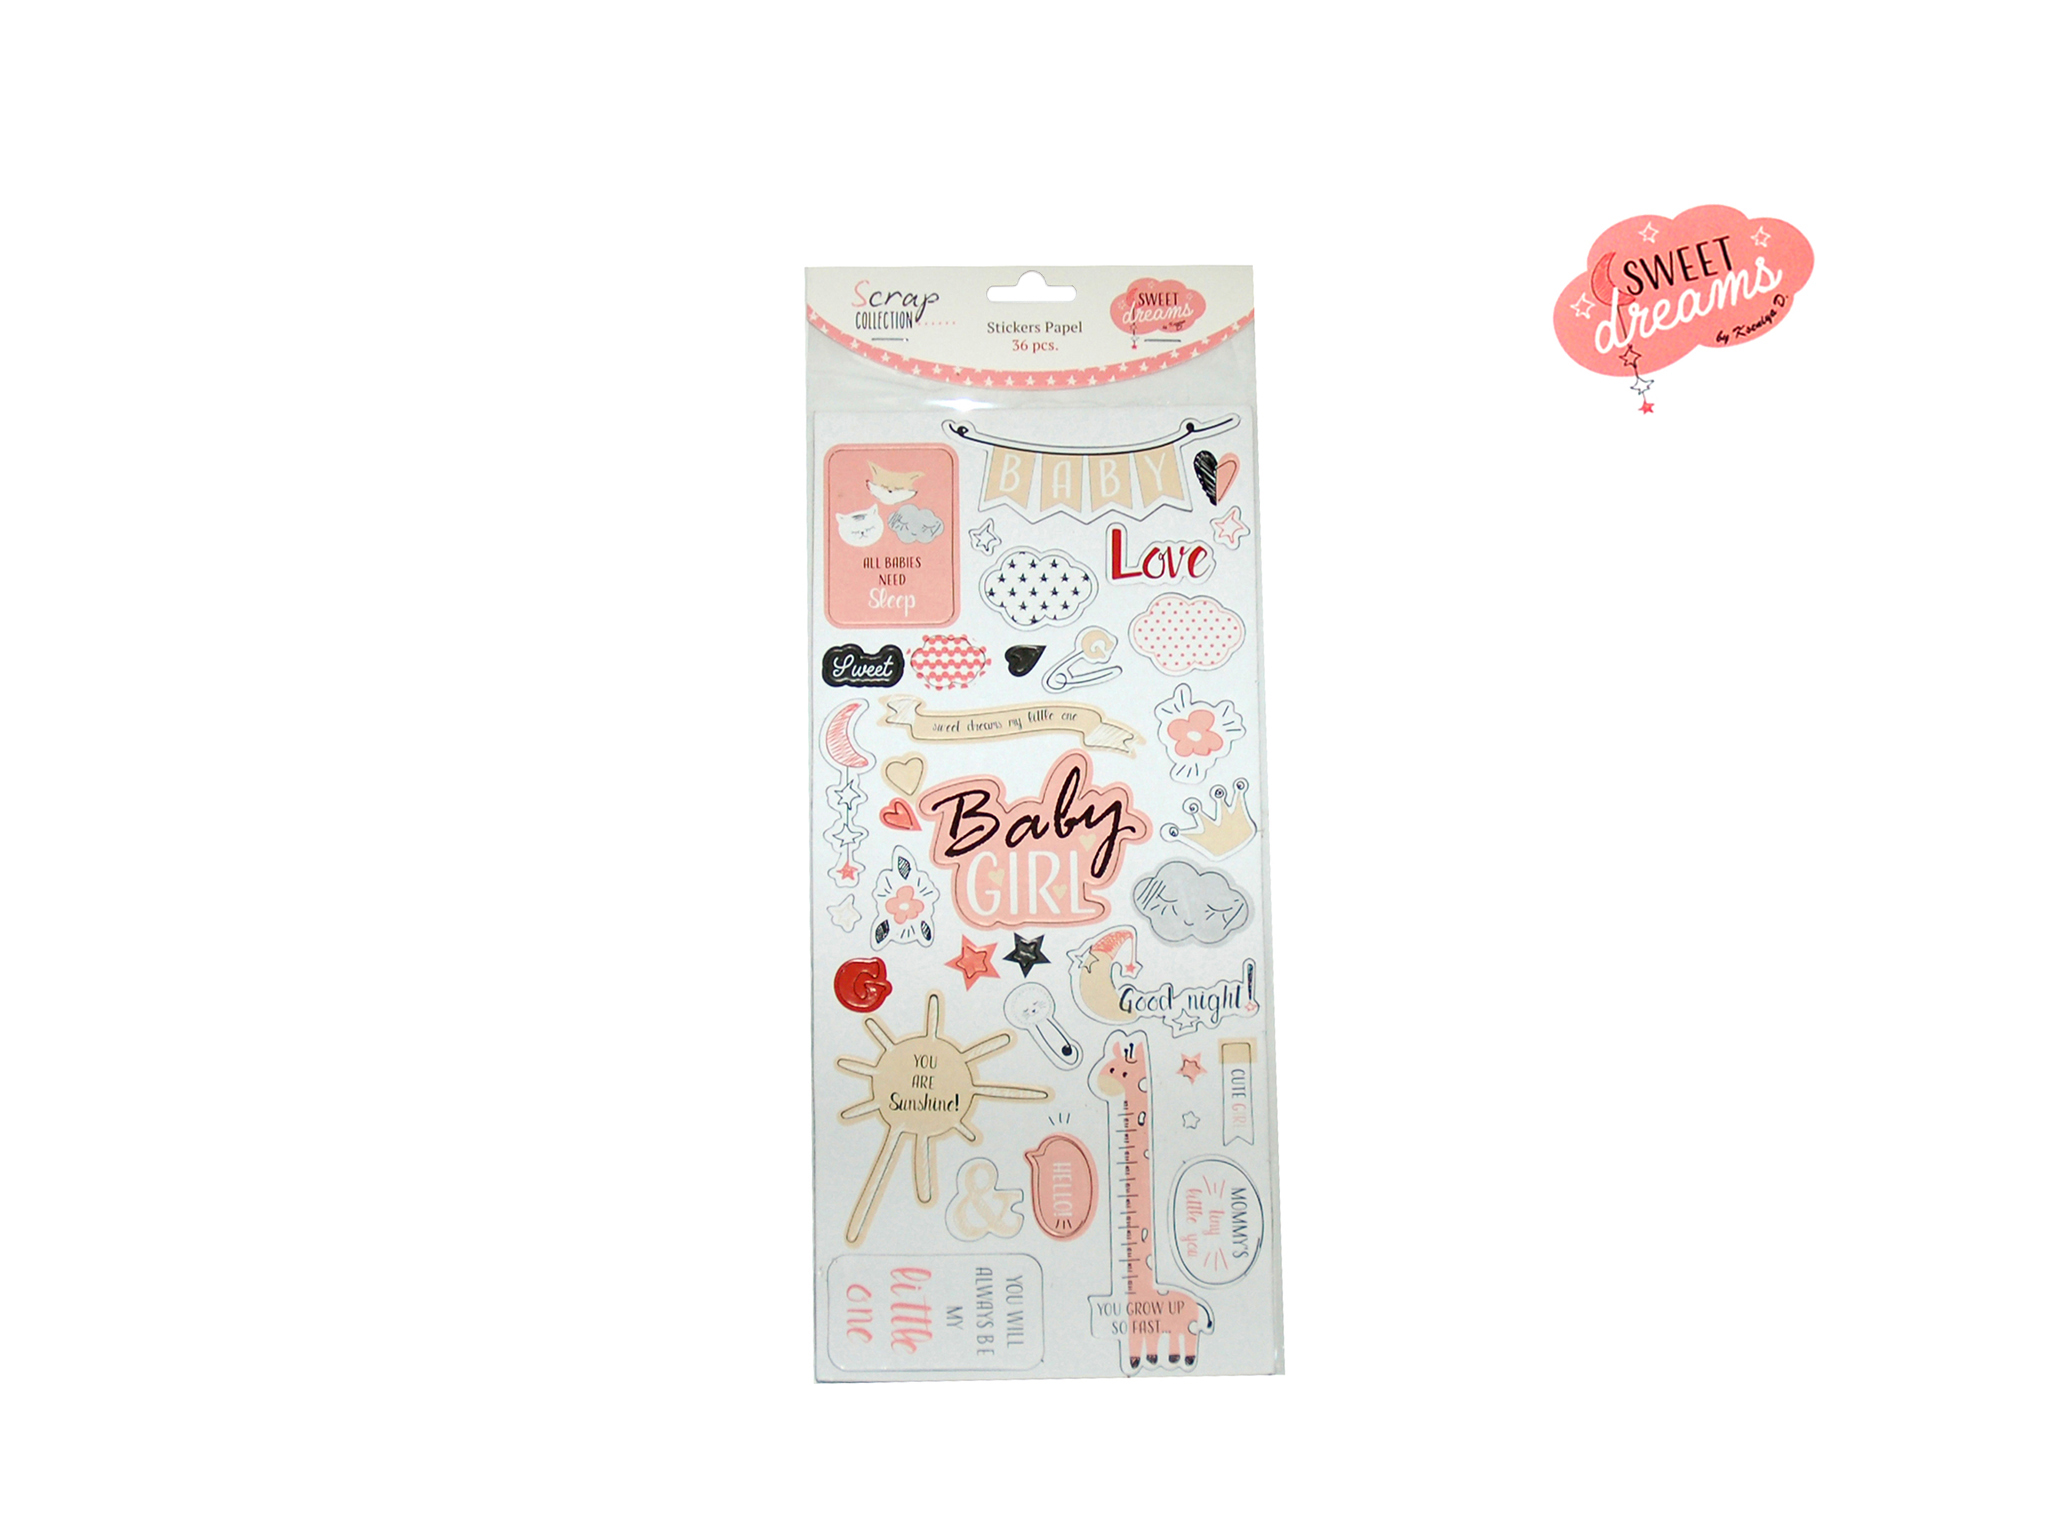 STICKERS PAPEL SURT. SWEET DREAMS GIRL cod. 2501789